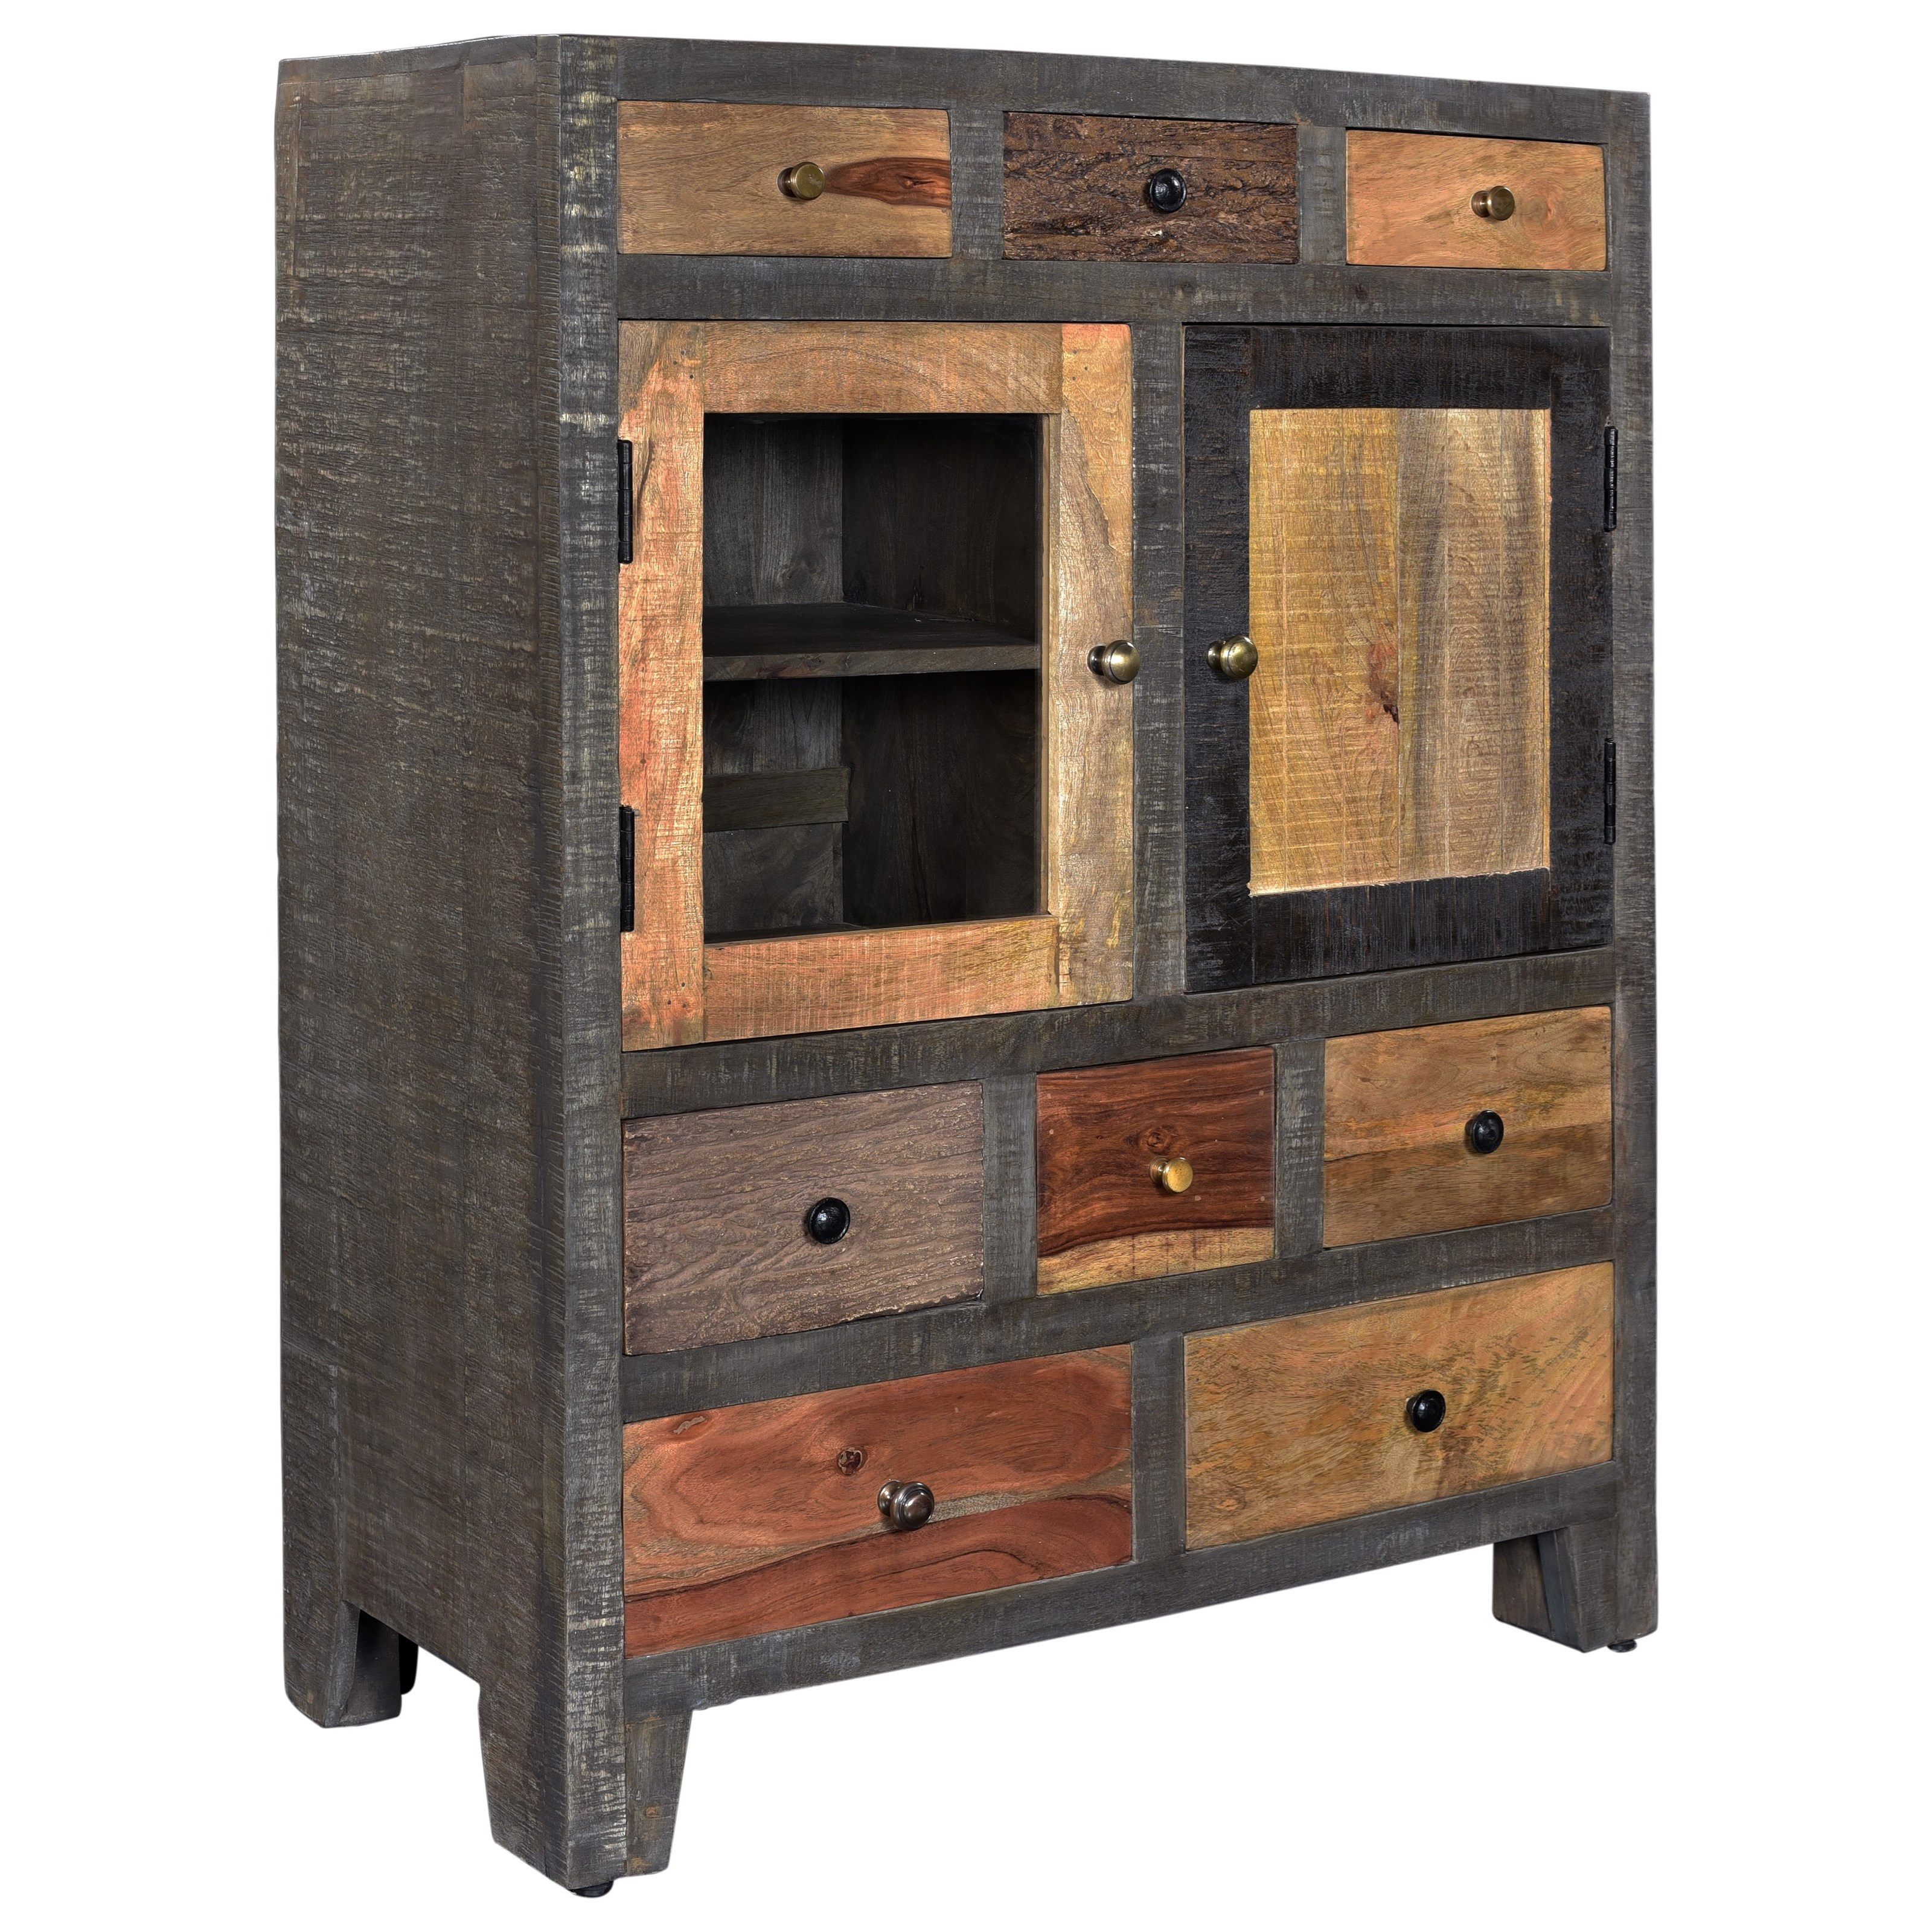 C2C Accents Eight Drawer Two Door Cabinet by C2C at Walker's Furniture